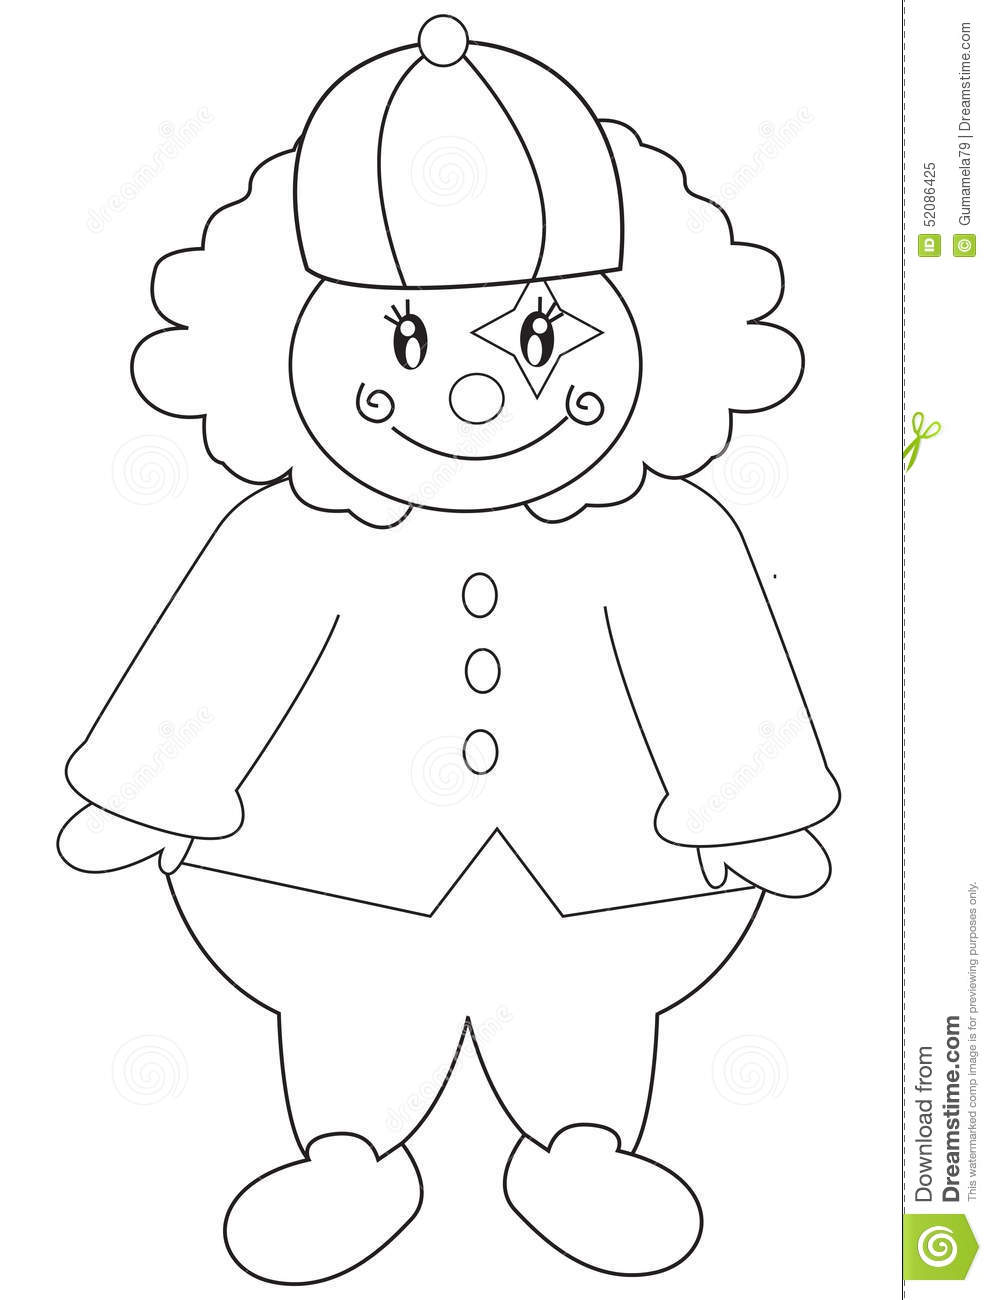 Clown Coloring Page Stock Illustrations – 148 Clown Coloring Page ...